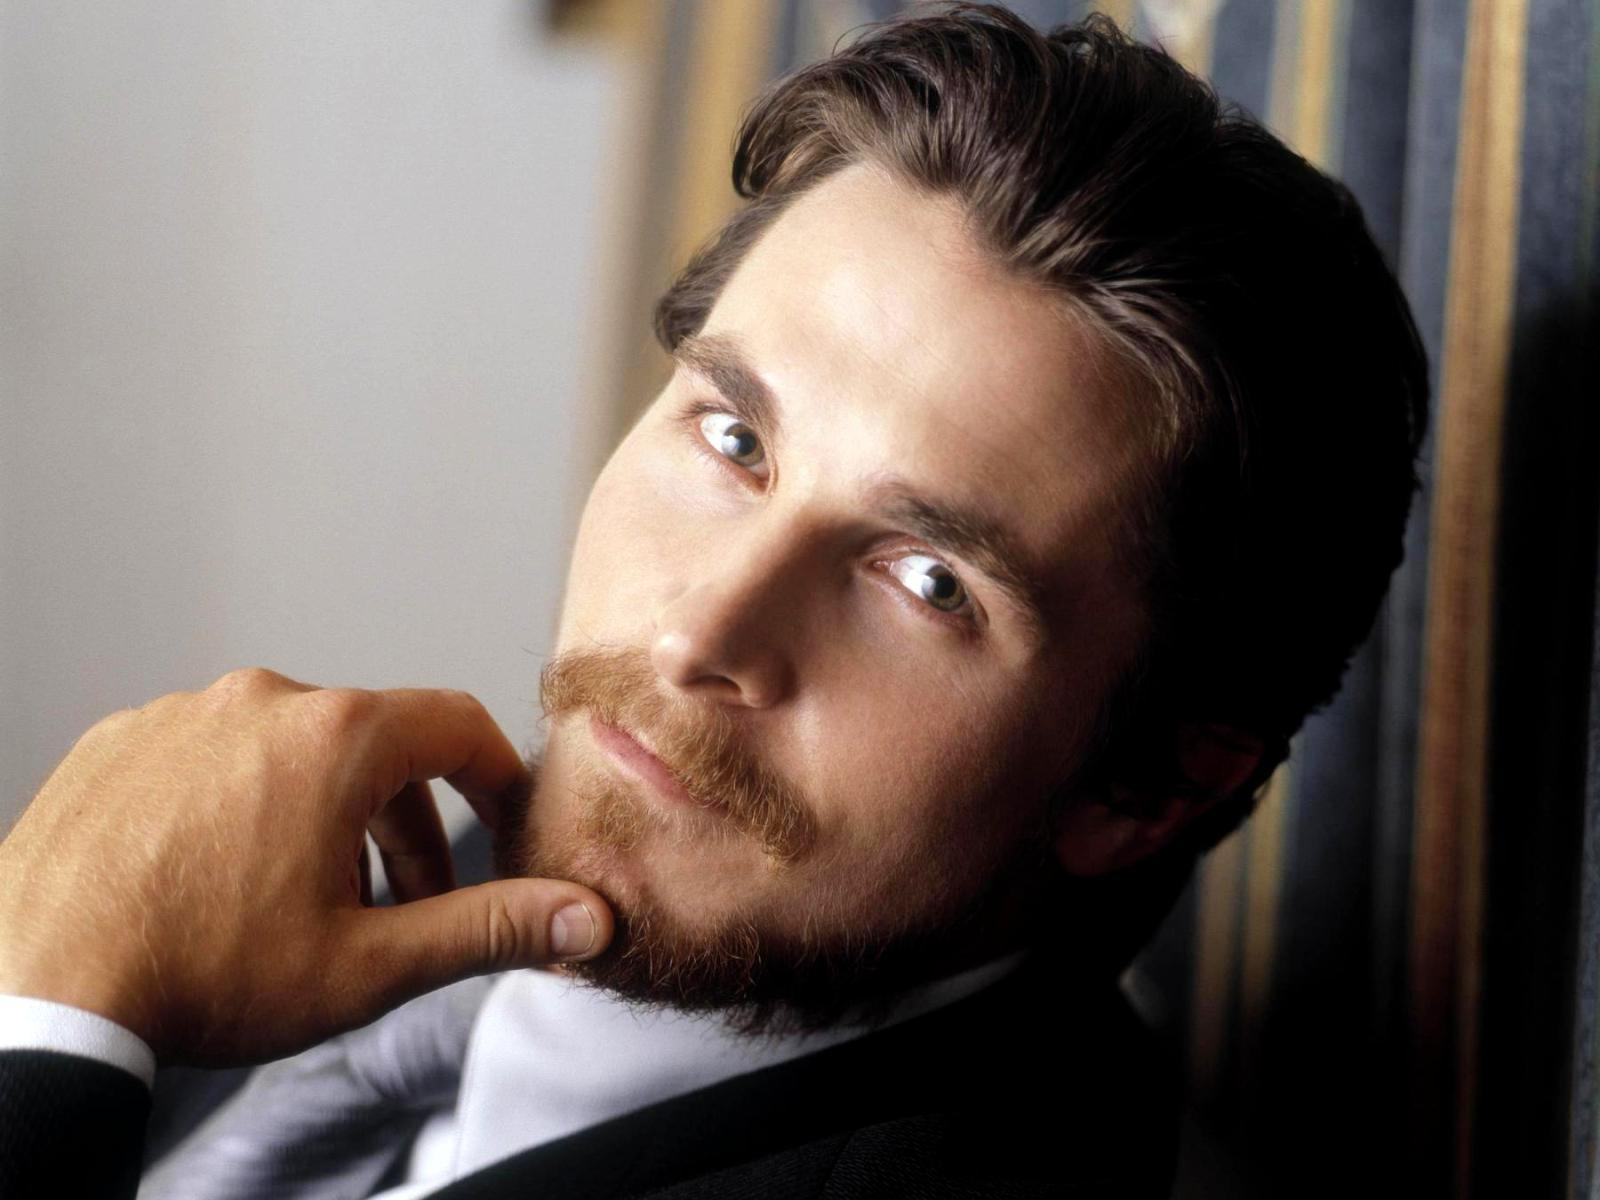 1600x1200 - Christian Bale Wallpapers 18